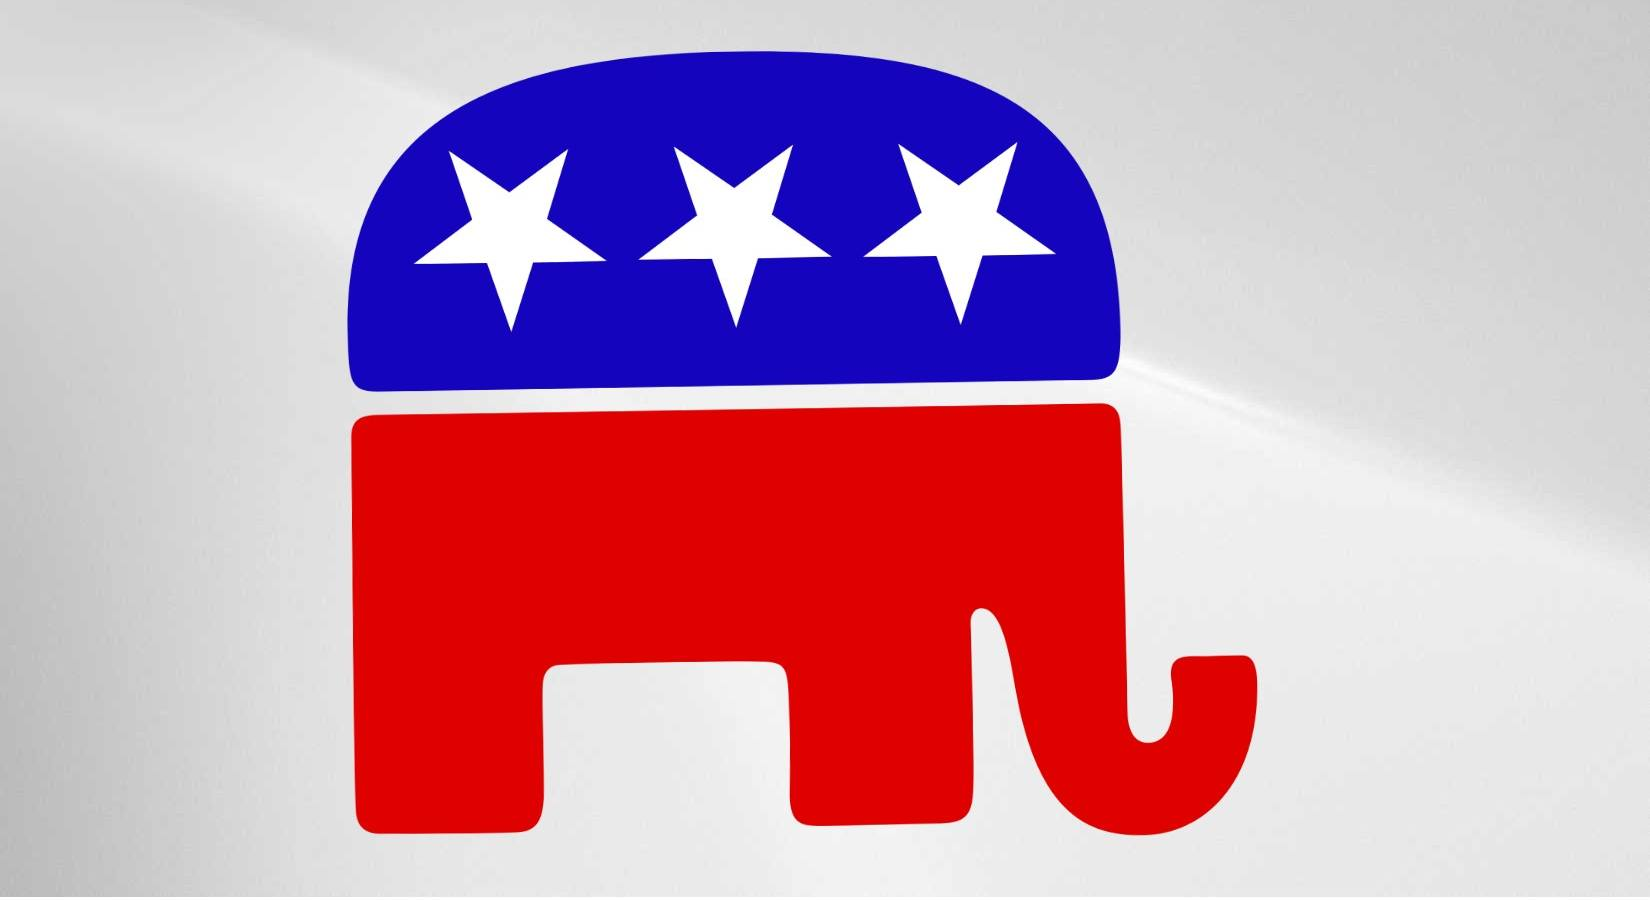 Foto: Republican party logo